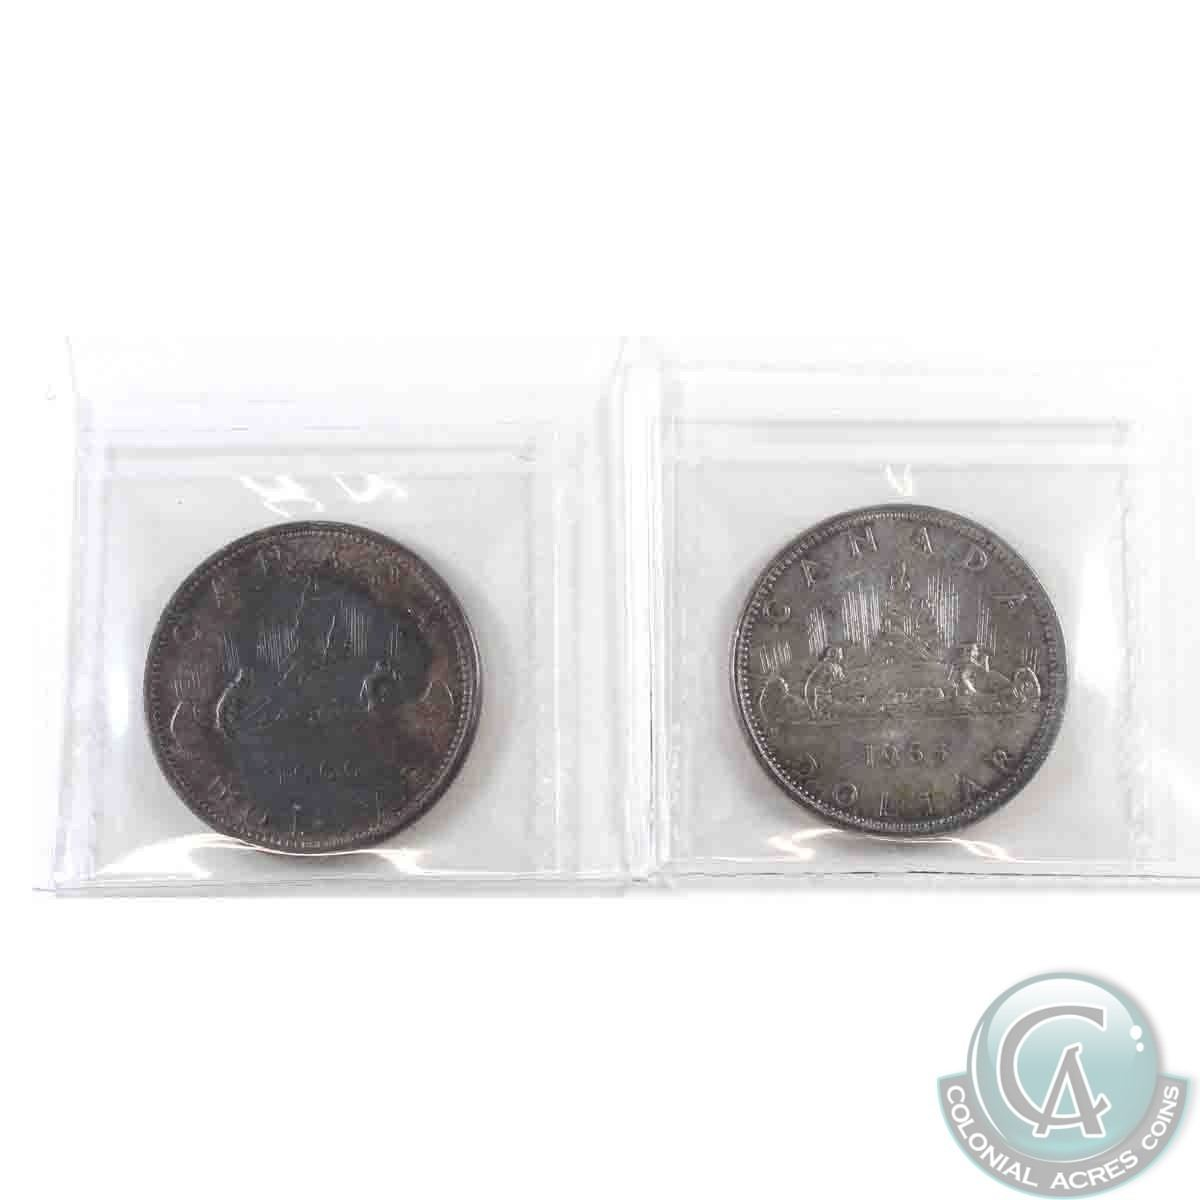 Silver 1 1966 Large Beads 1965 Blunt 5 Both ICCS Certified MS 64 Coins Are Tone